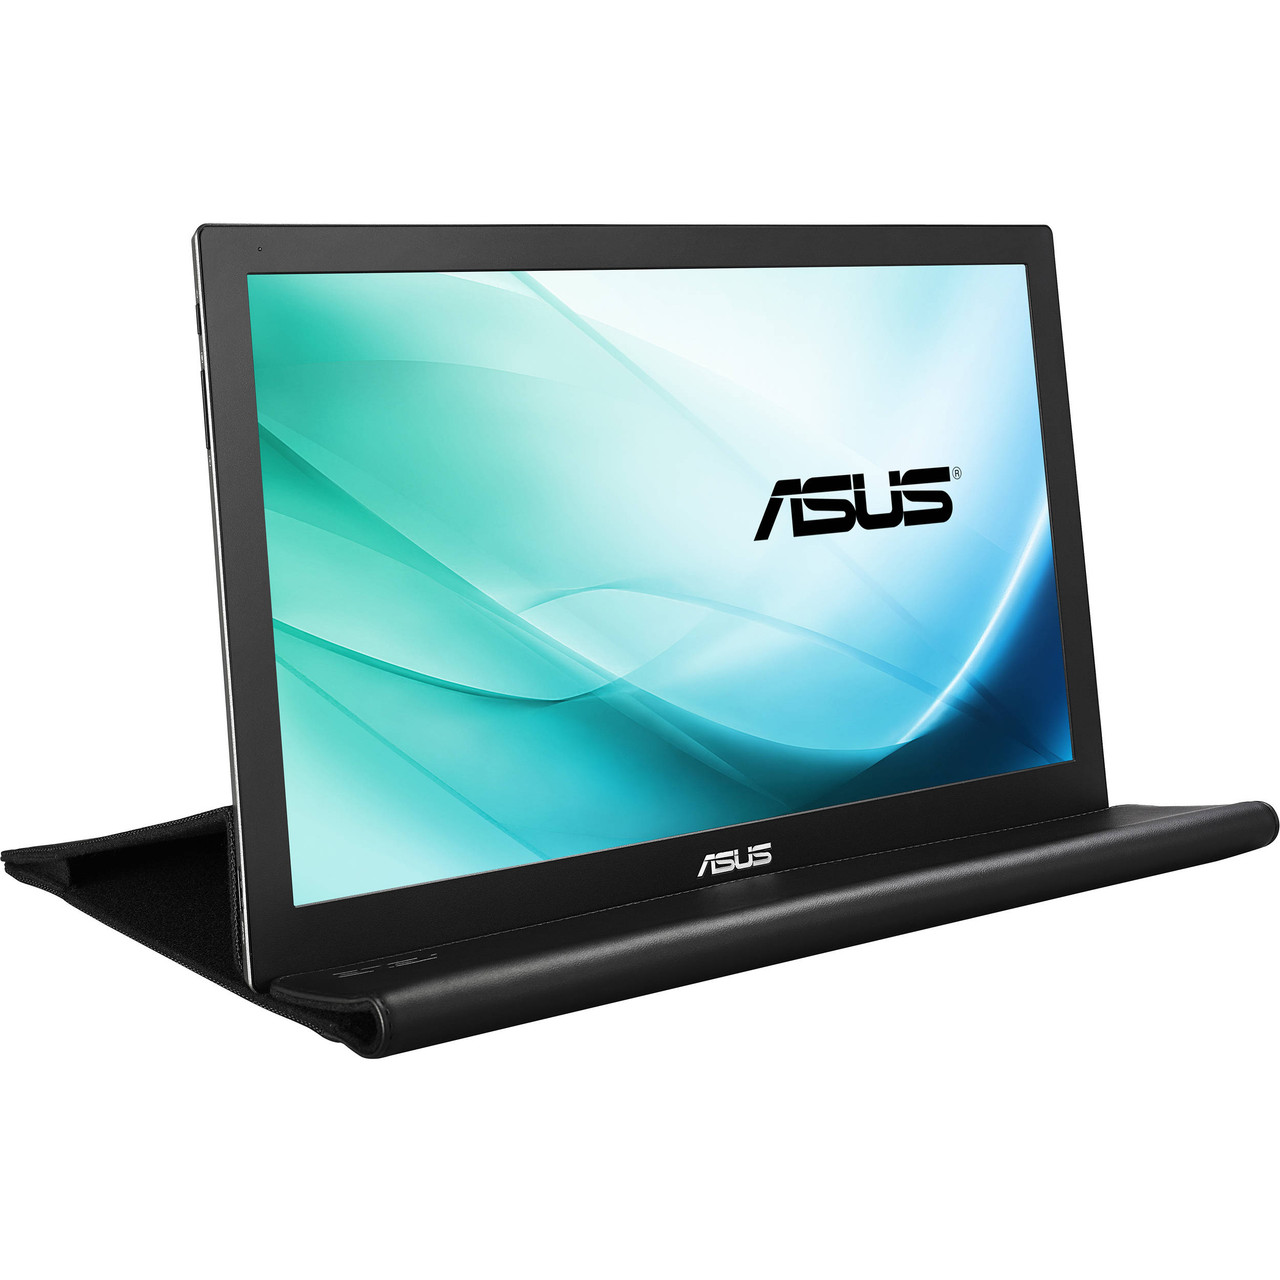 Product image for Asus MB169B+ 15.6in Portable IPS USB-powered Monitor | CX Computer Superstore